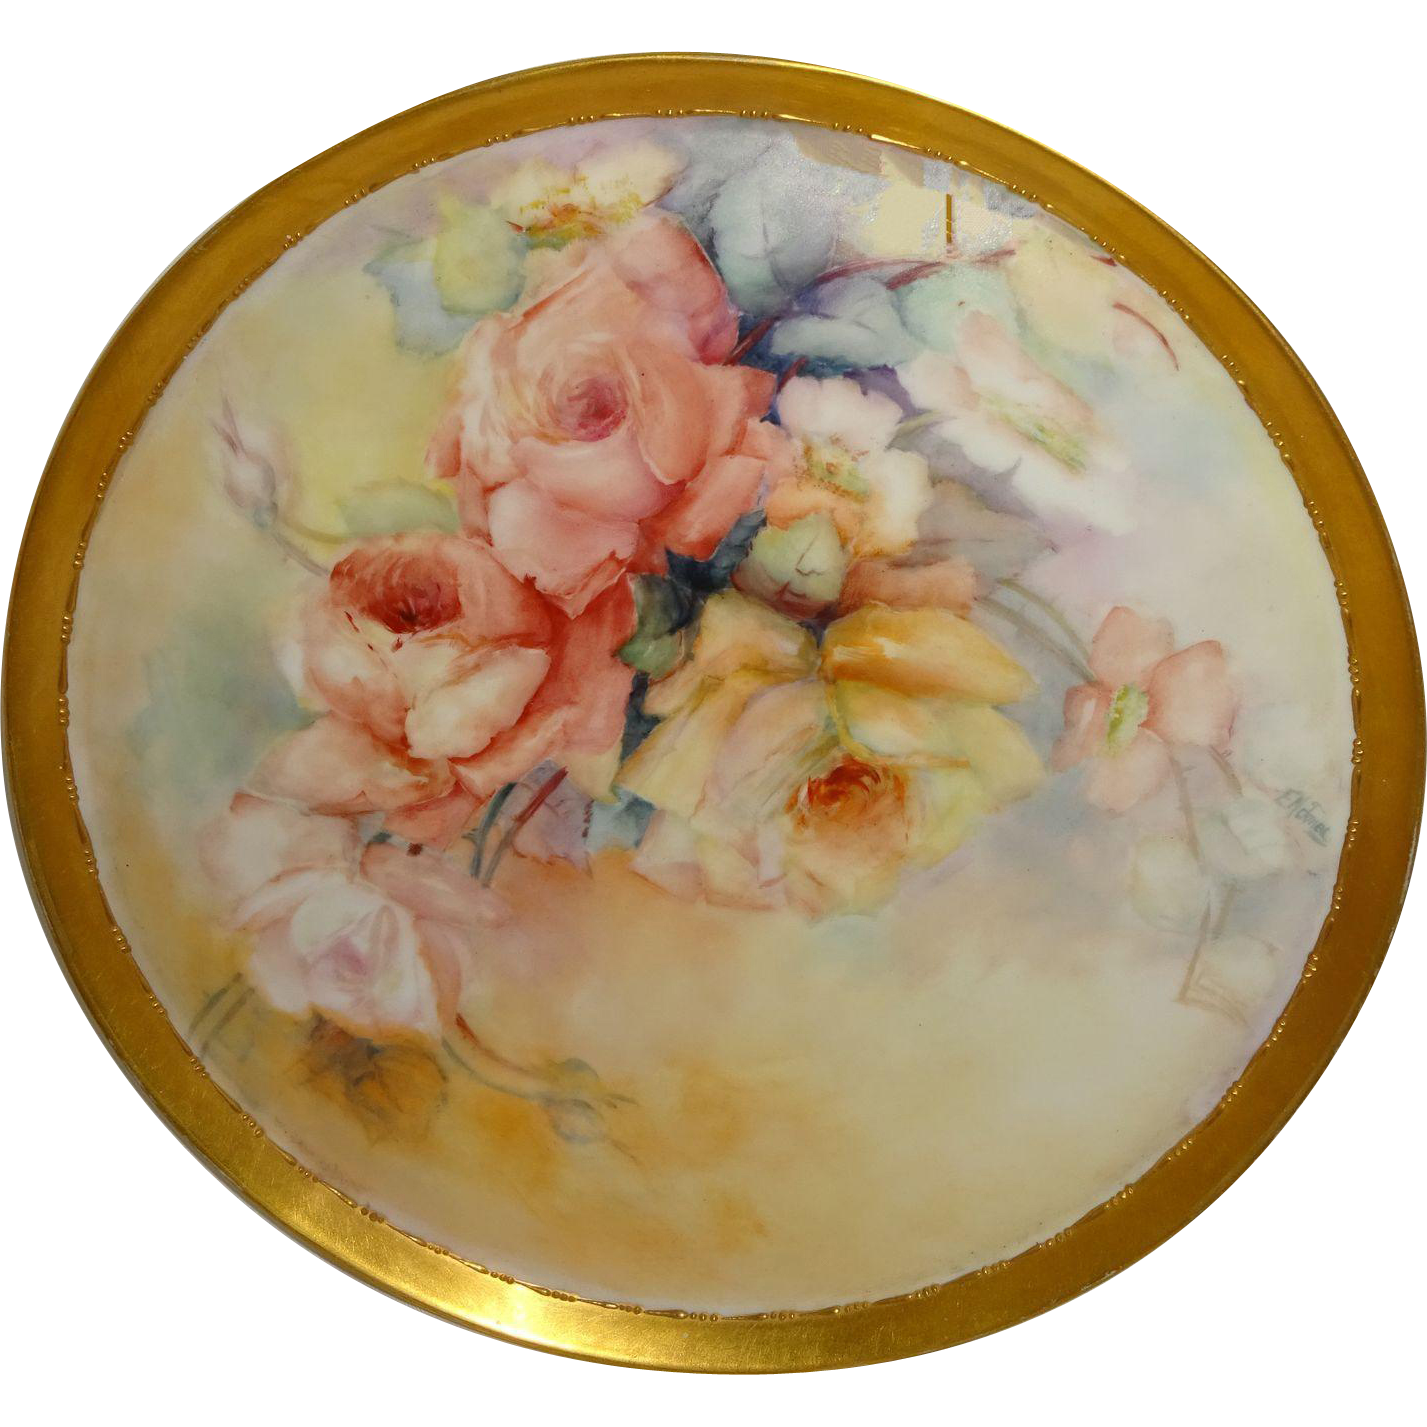 GORGEOUS -T&V - Limoges - France - Charger - Tray - Hand Painted - Romantic - Victorian Bouquets - Tea Roses - Artist Signed - One-of-a-Kind - Museum Quality - French Antique Heirloom